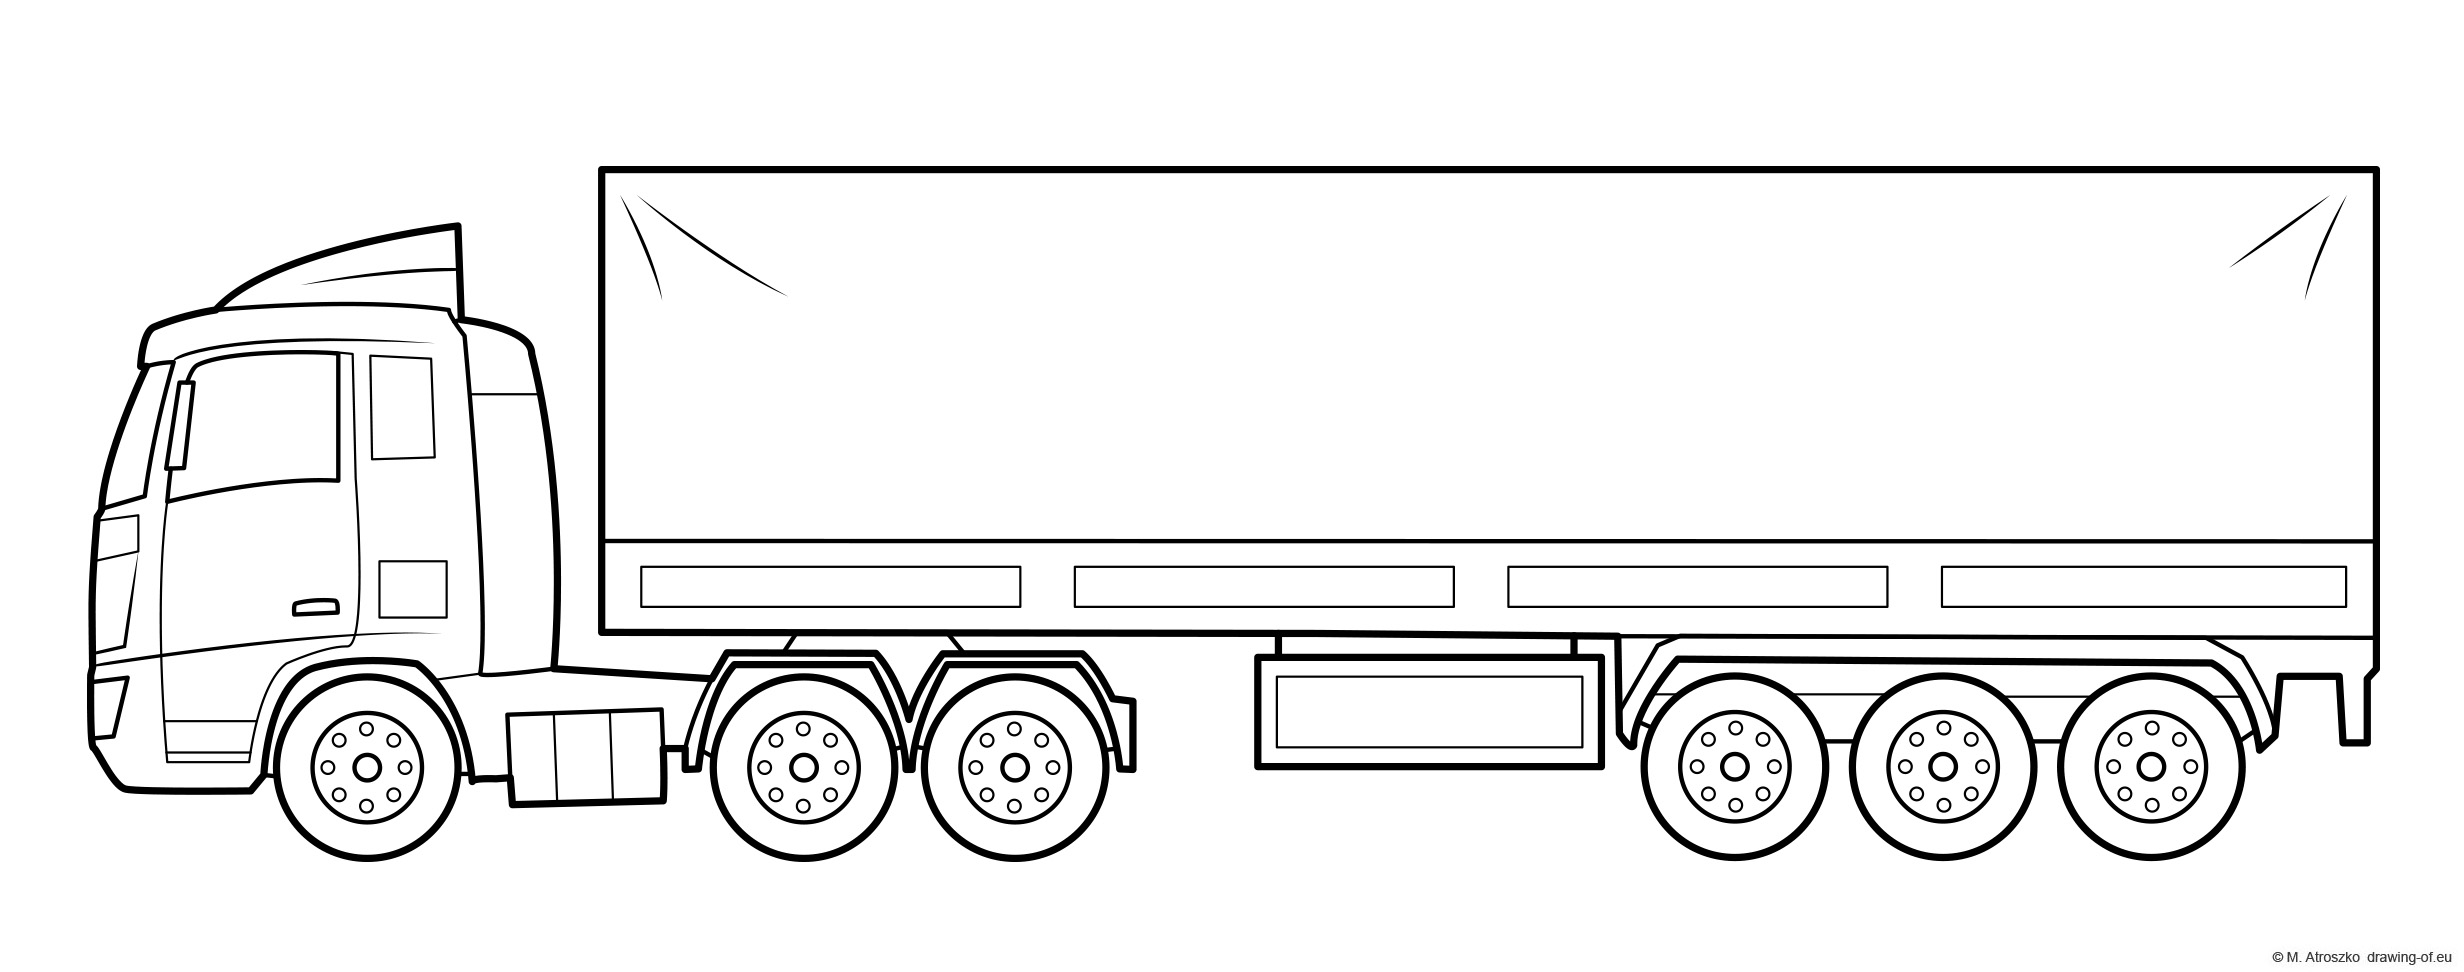 Truck and trailer coloring page